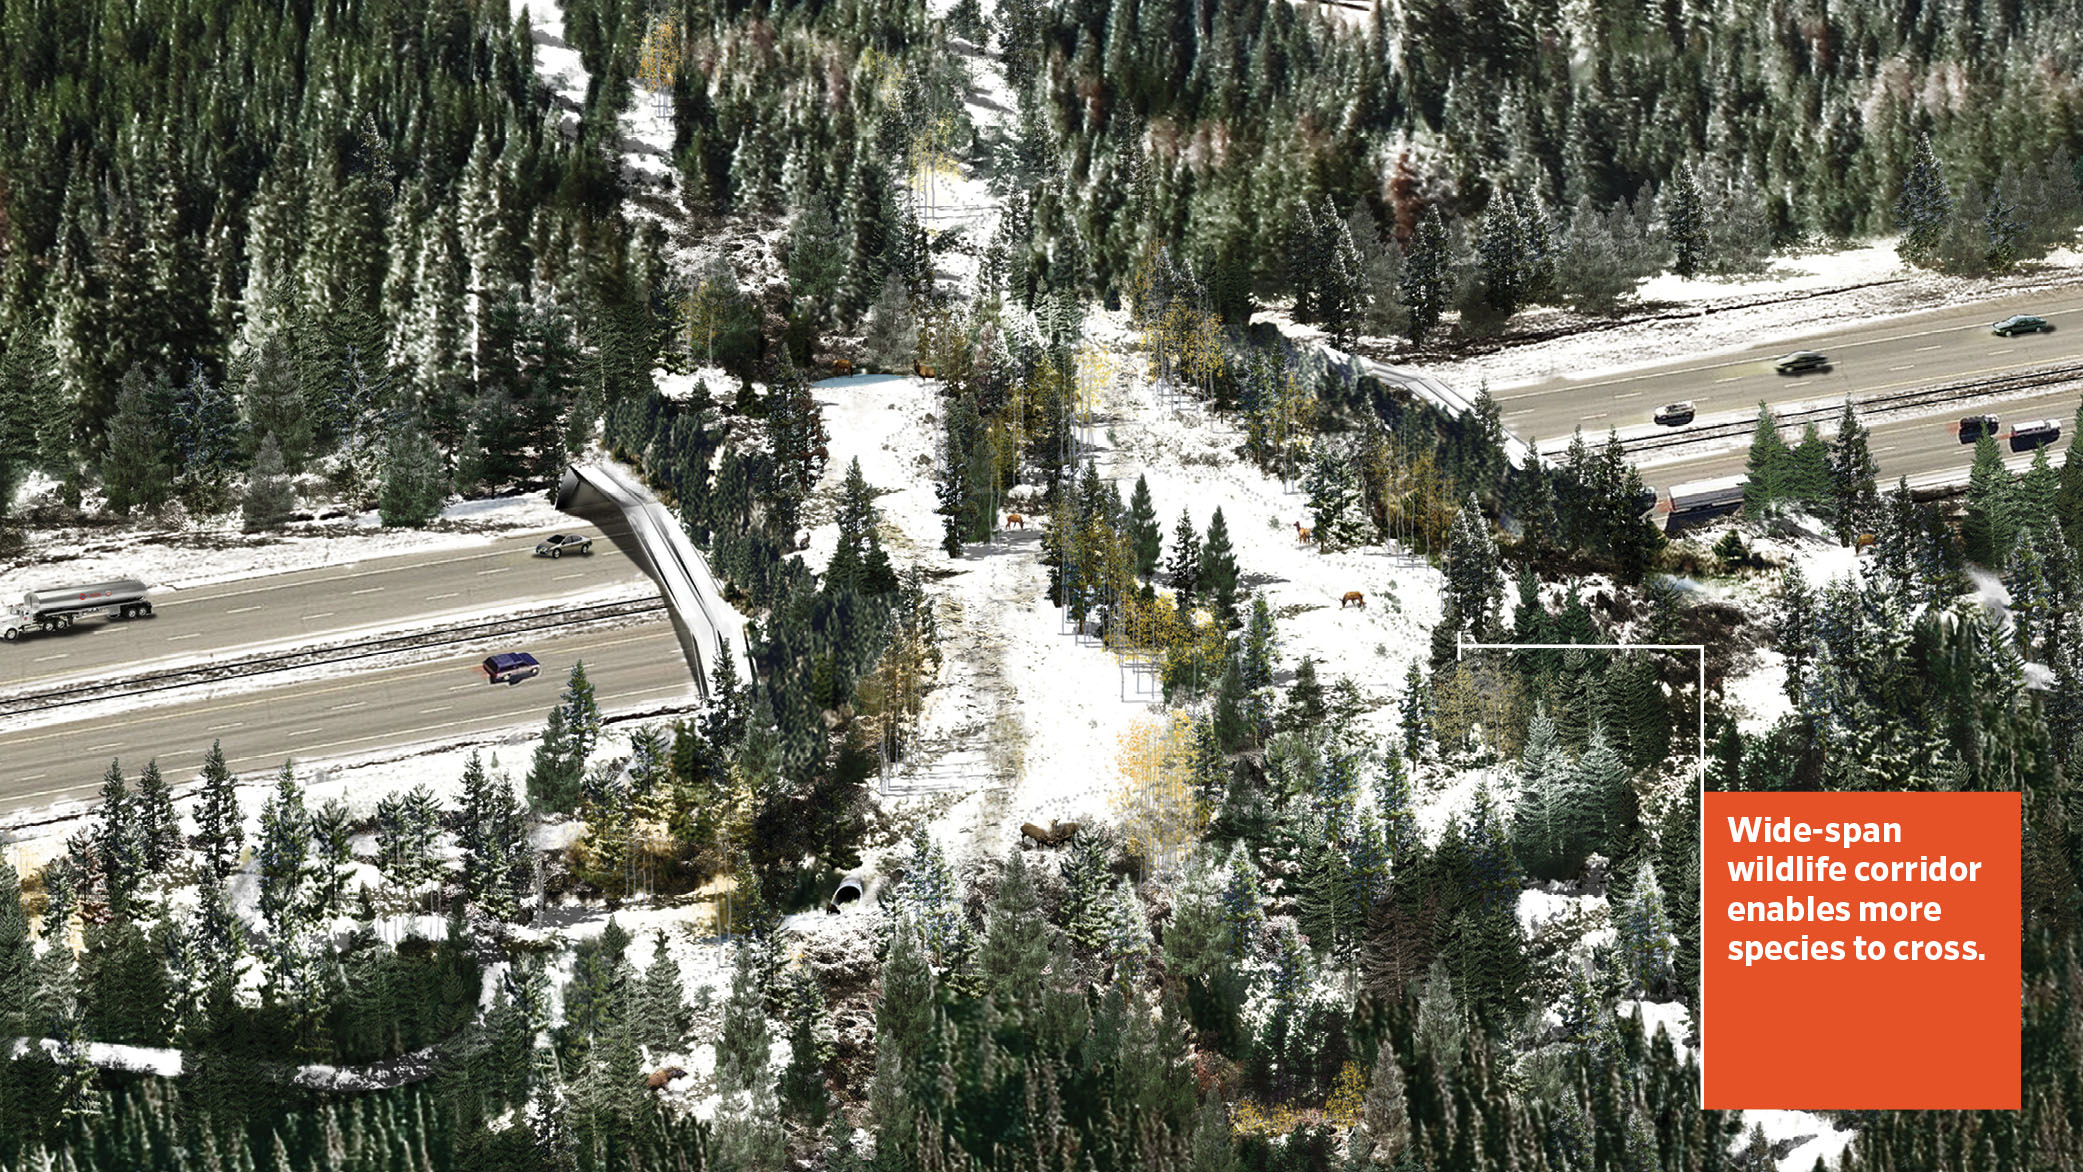 A rendering of the wide-span Hypar-Nature wildlife crossing in West Vail Pass, Colorado. The crossing covers a multi-lane highway and enables multiple species to cross in safety.